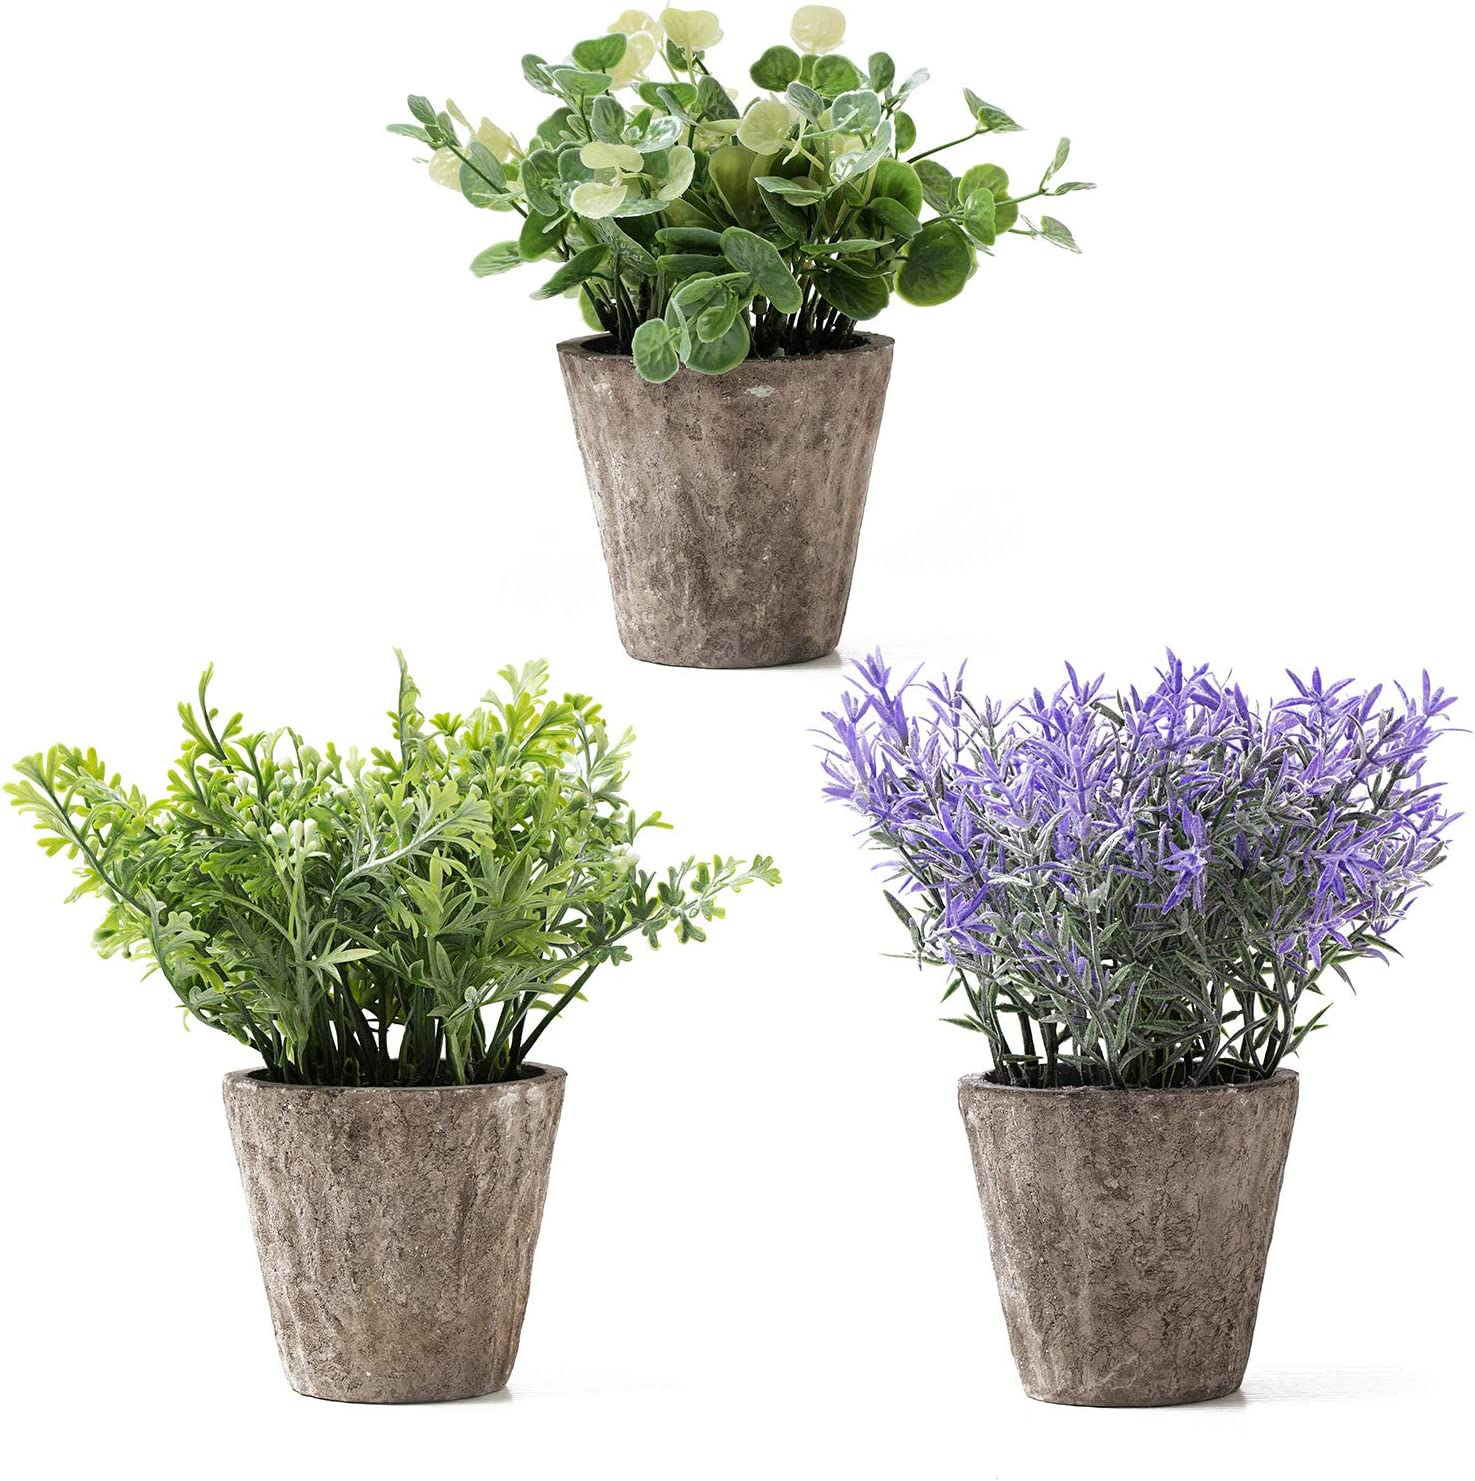 Artificial Potted Plants for Home Decor,3 Pieces of Various Faux Eucalyptus Rosemary Lavender in Medium Concrete-Grey Pots,Rustic Fake Plants for Living Room,Office,Desktop,Bookshelf Indoor Decor